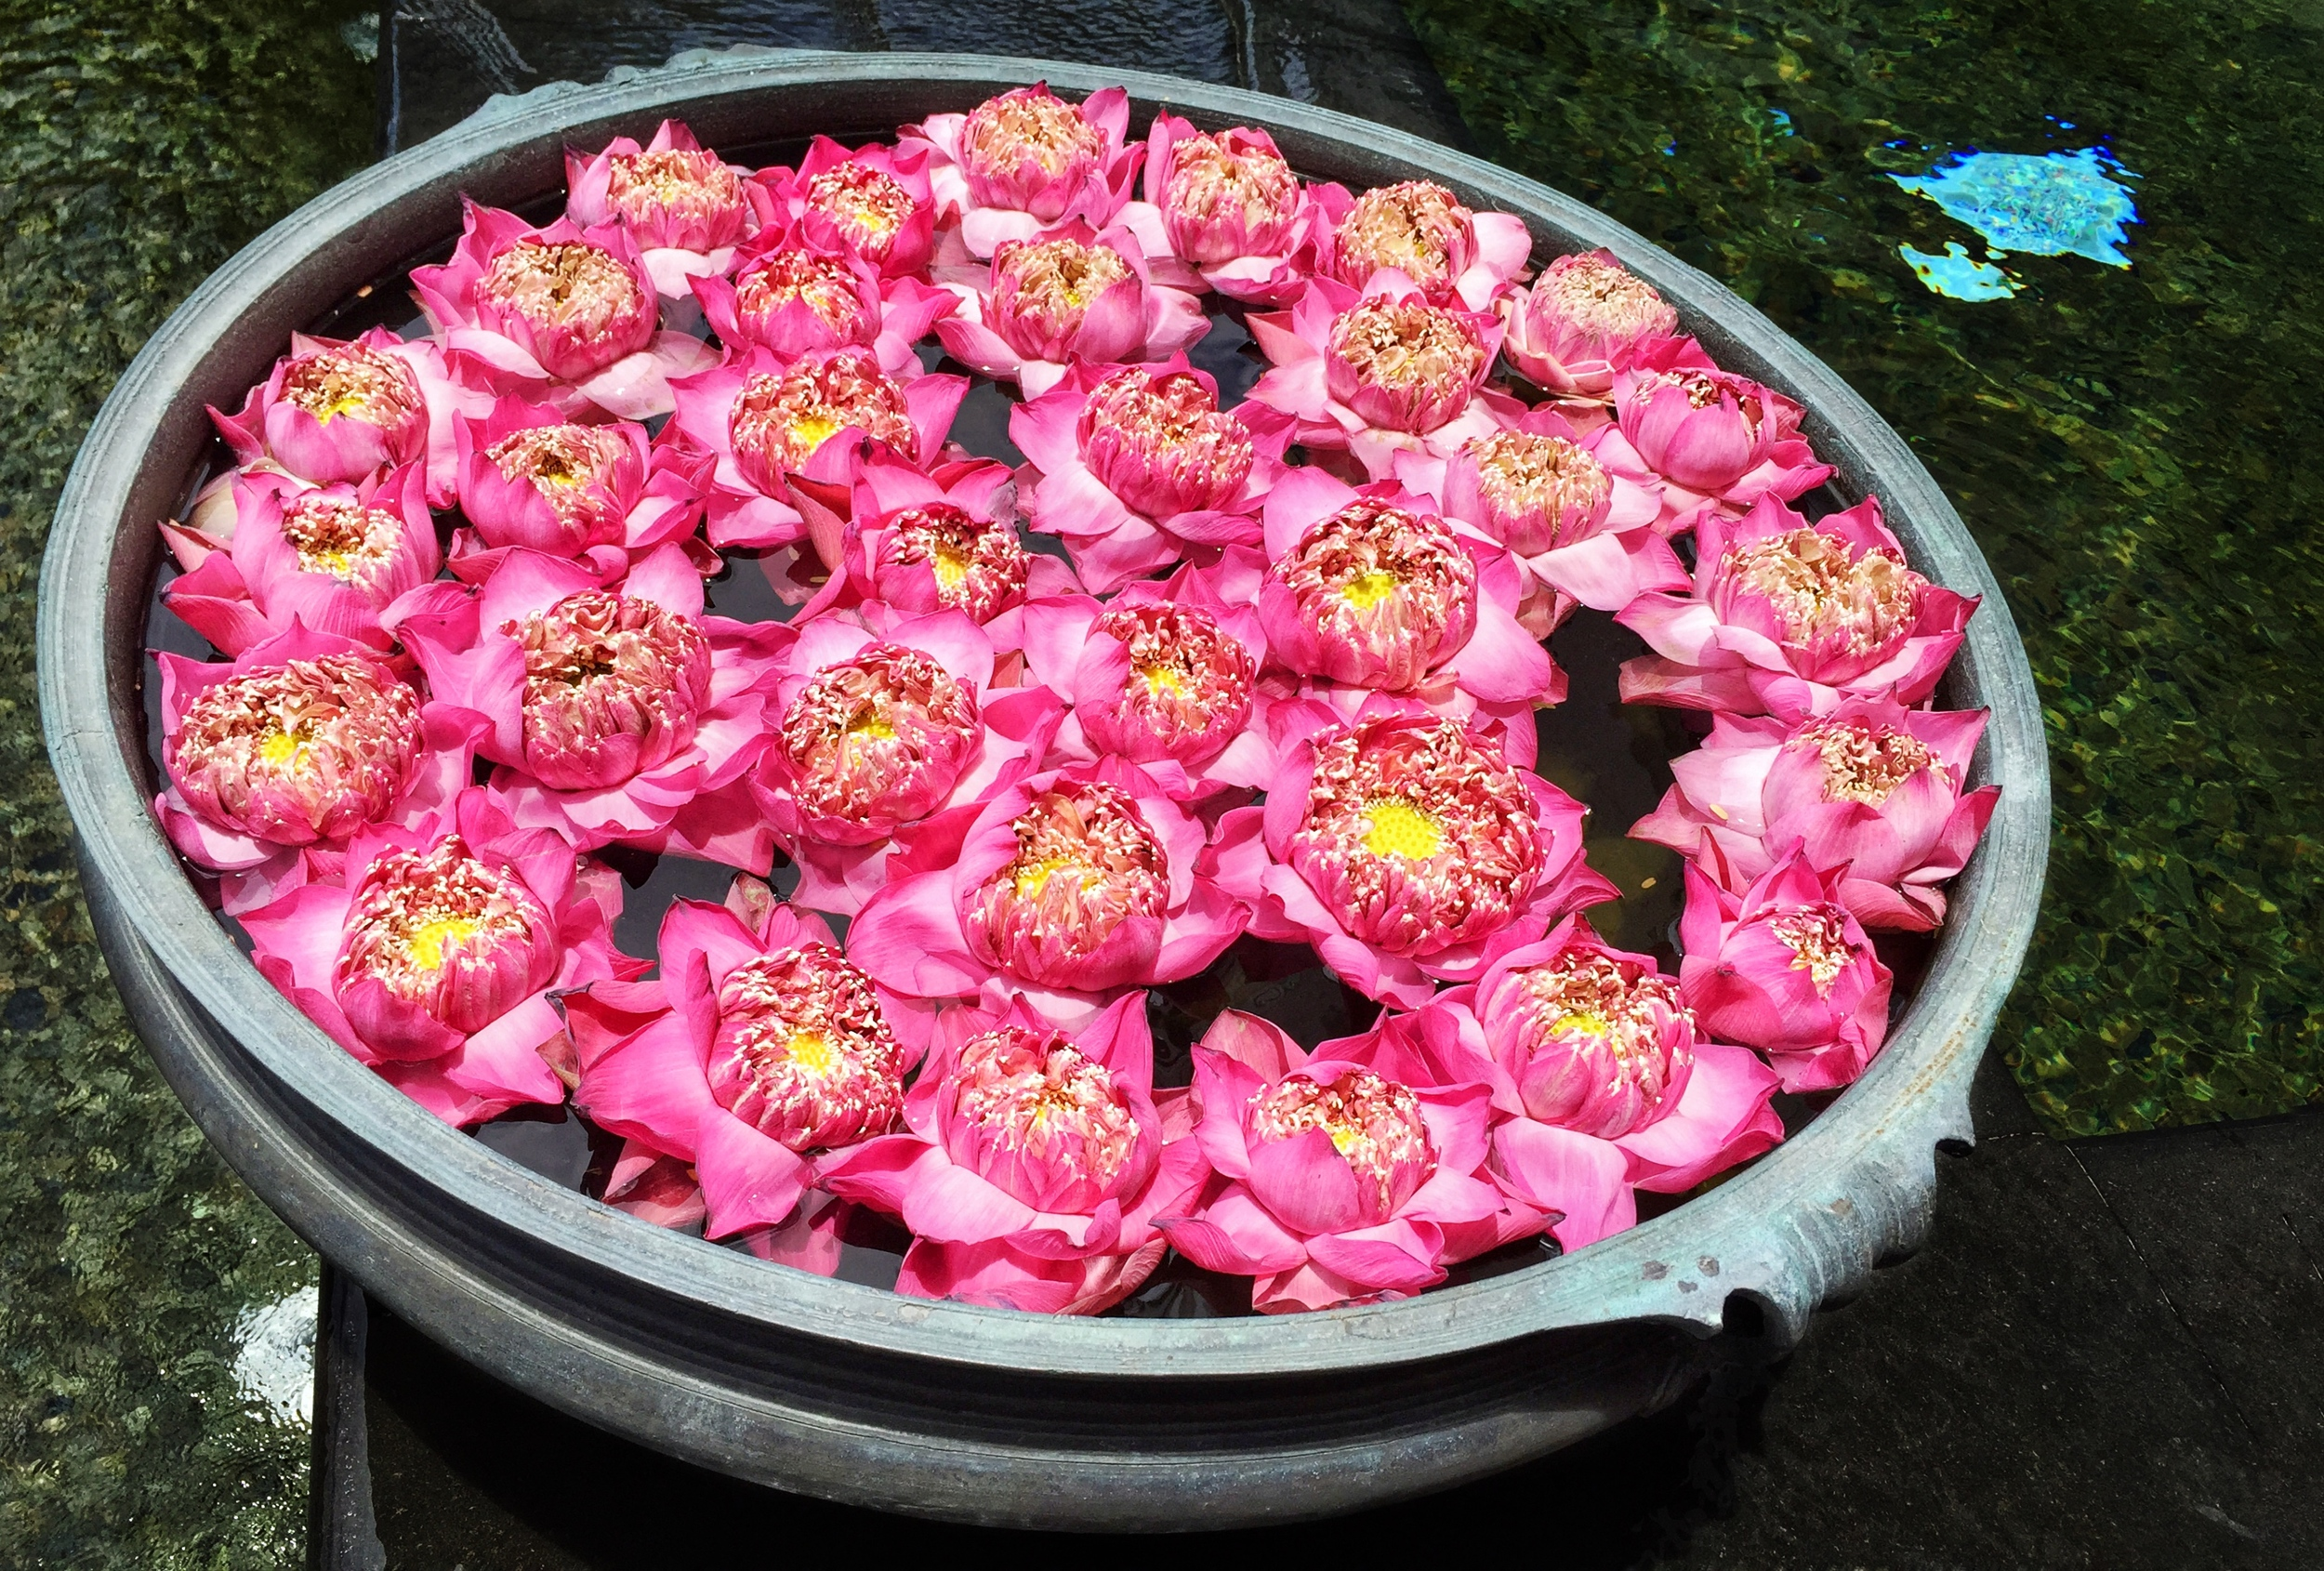 Floating pink lotus flowers by the wading pool. © Eileen Hsieh